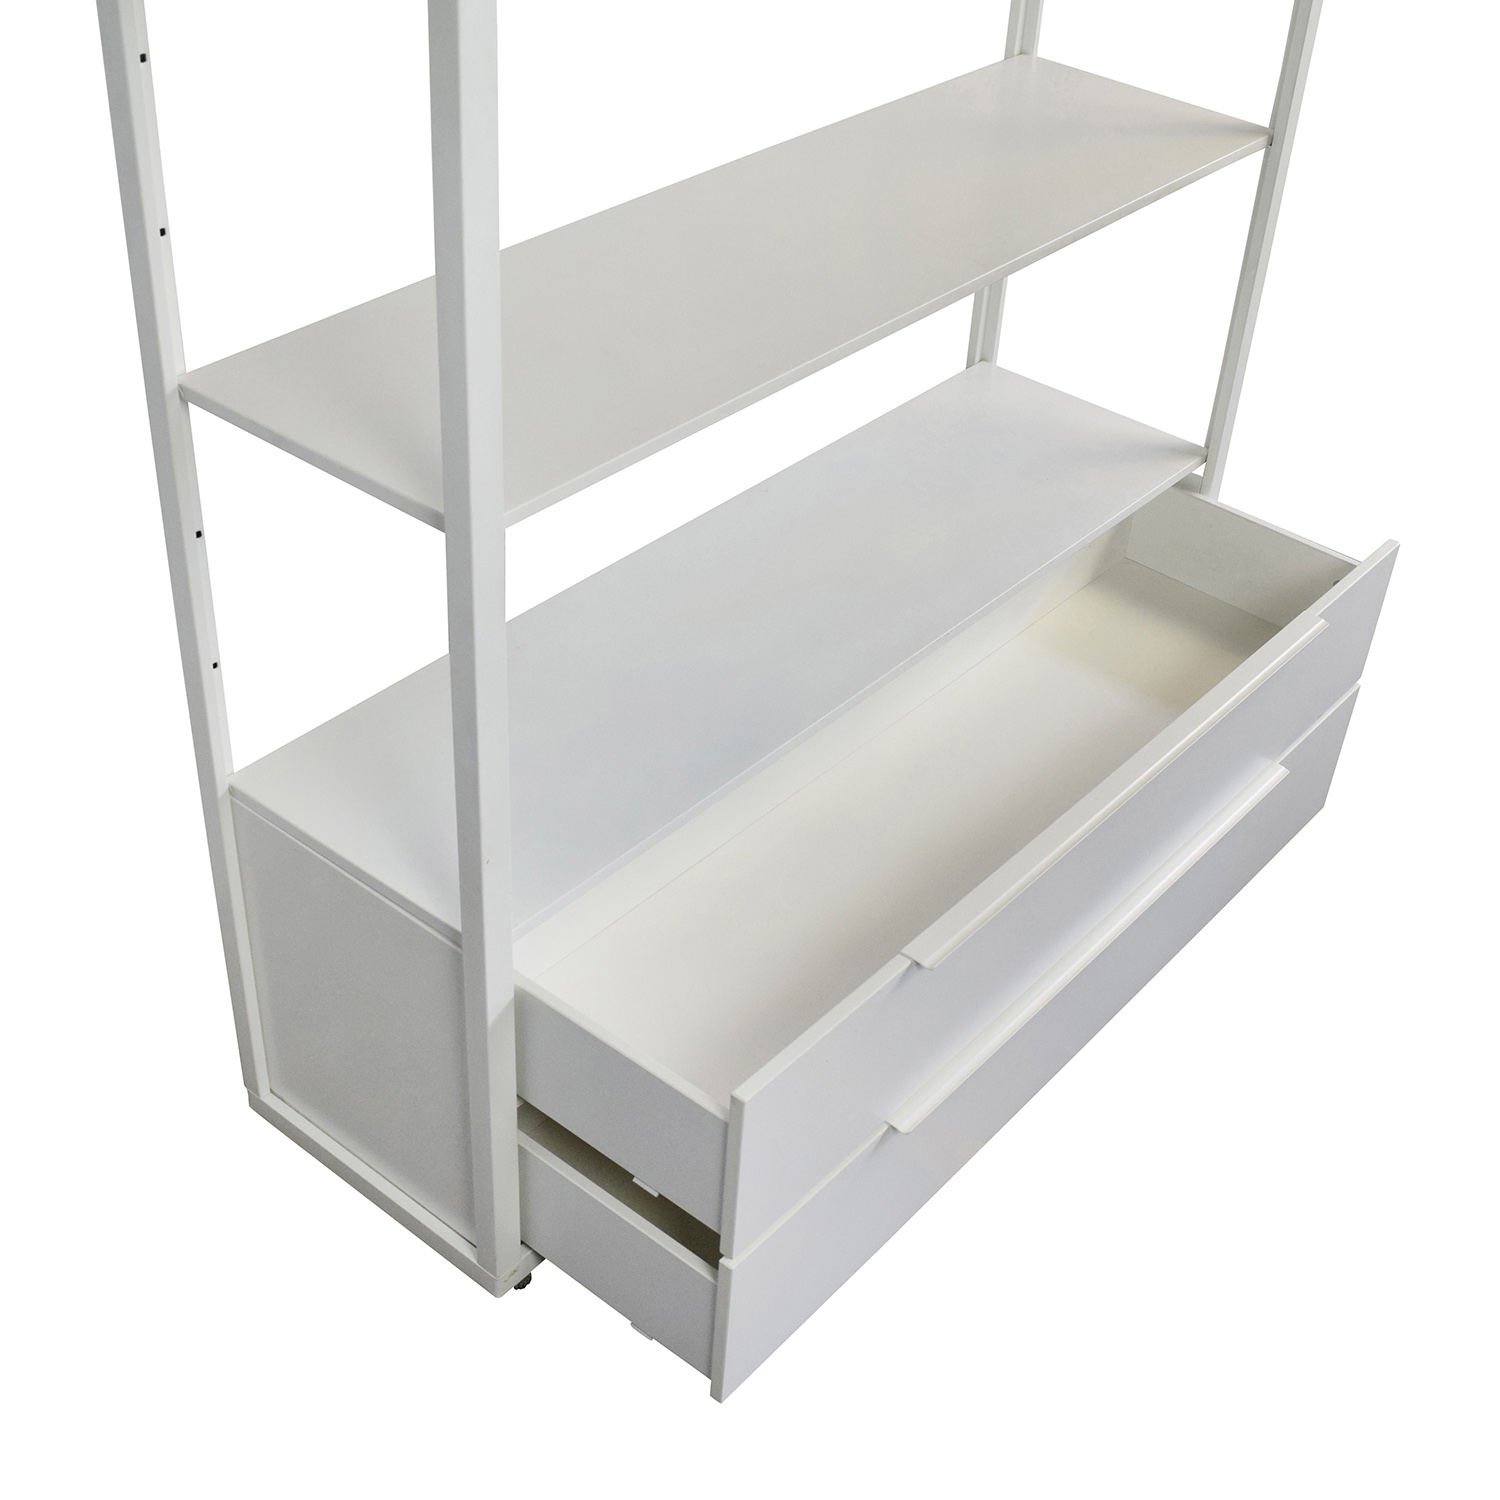 63 off ikea ikea white shelving unit with drawers storage. Black Bedroom Furniture Sets. Home Design Ideas